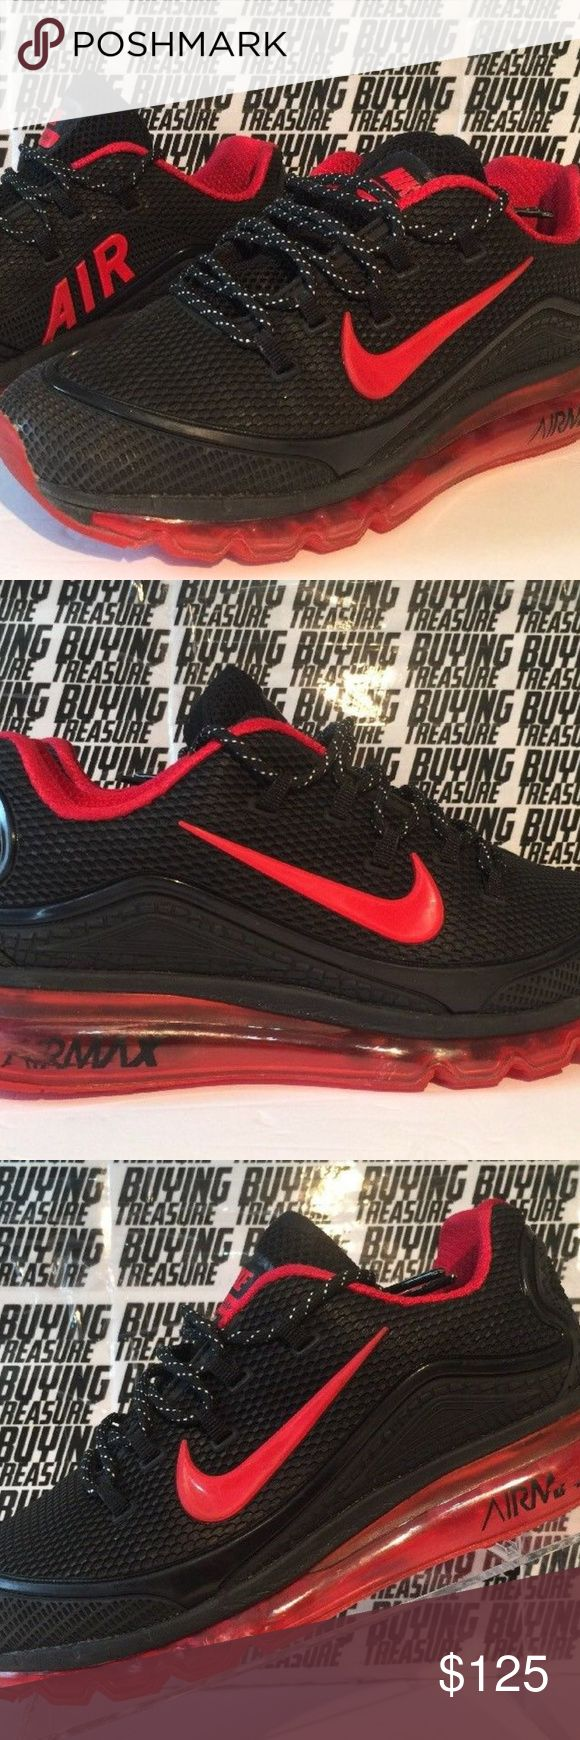 AIR MAX 2018 ELITE Men's Running Trainers Sz 7 NIKE AIR MAX 2018 ELITE Men's Running Trainers Shoes Black, Red  Sz 7 Used. See pictures, ask questions Nike Shoes Athletic Shoes